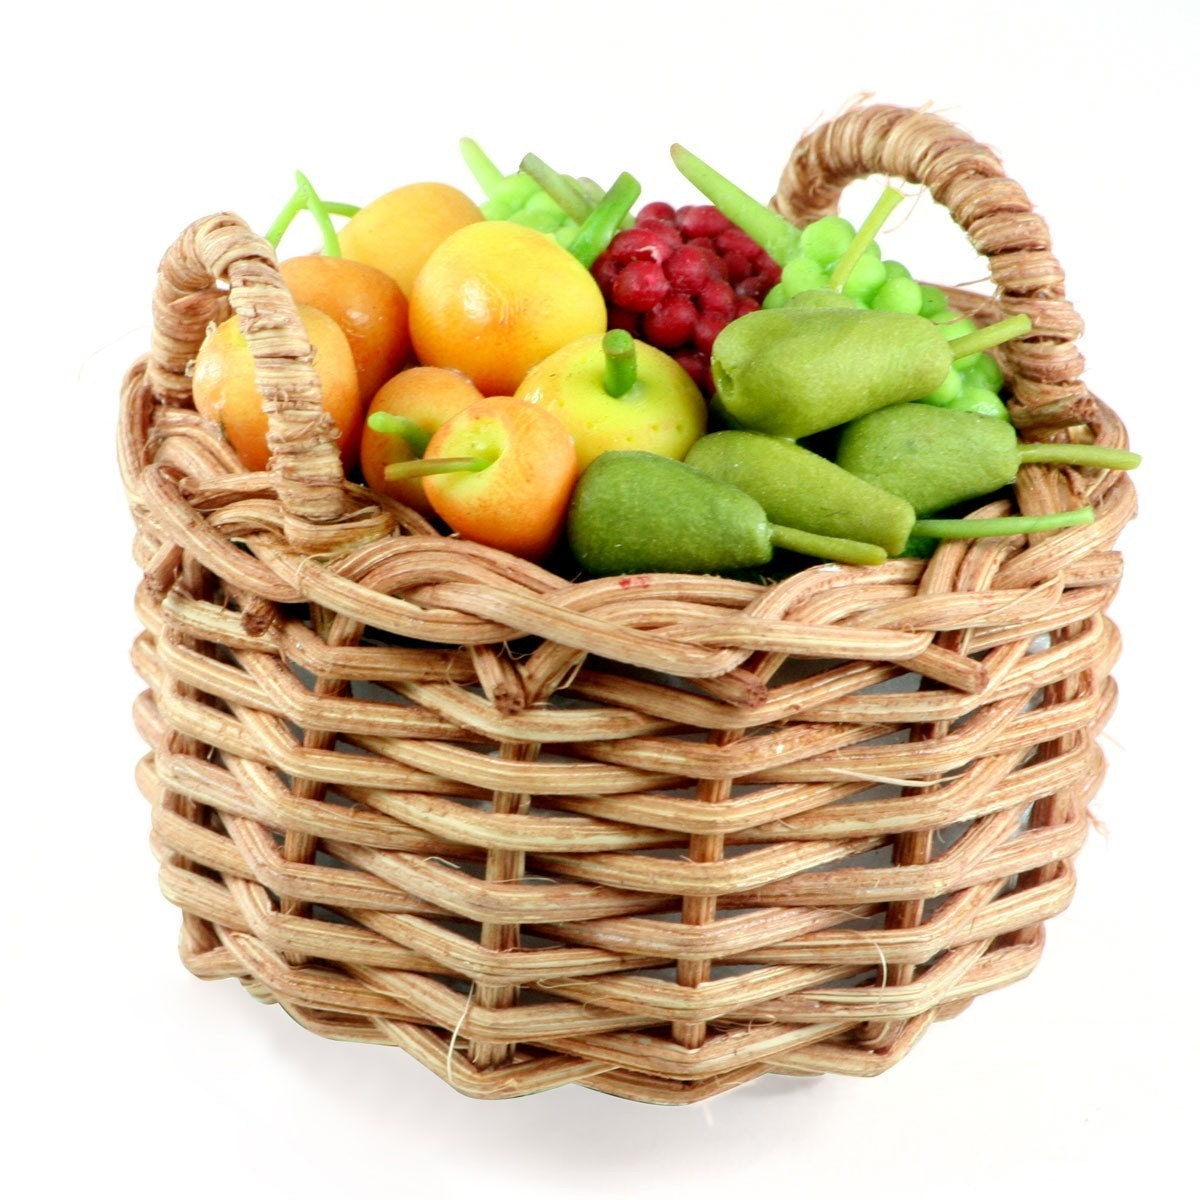 Basket Weaving Grapevines : Pear peach and grape polymer clay fruits in weaving basket